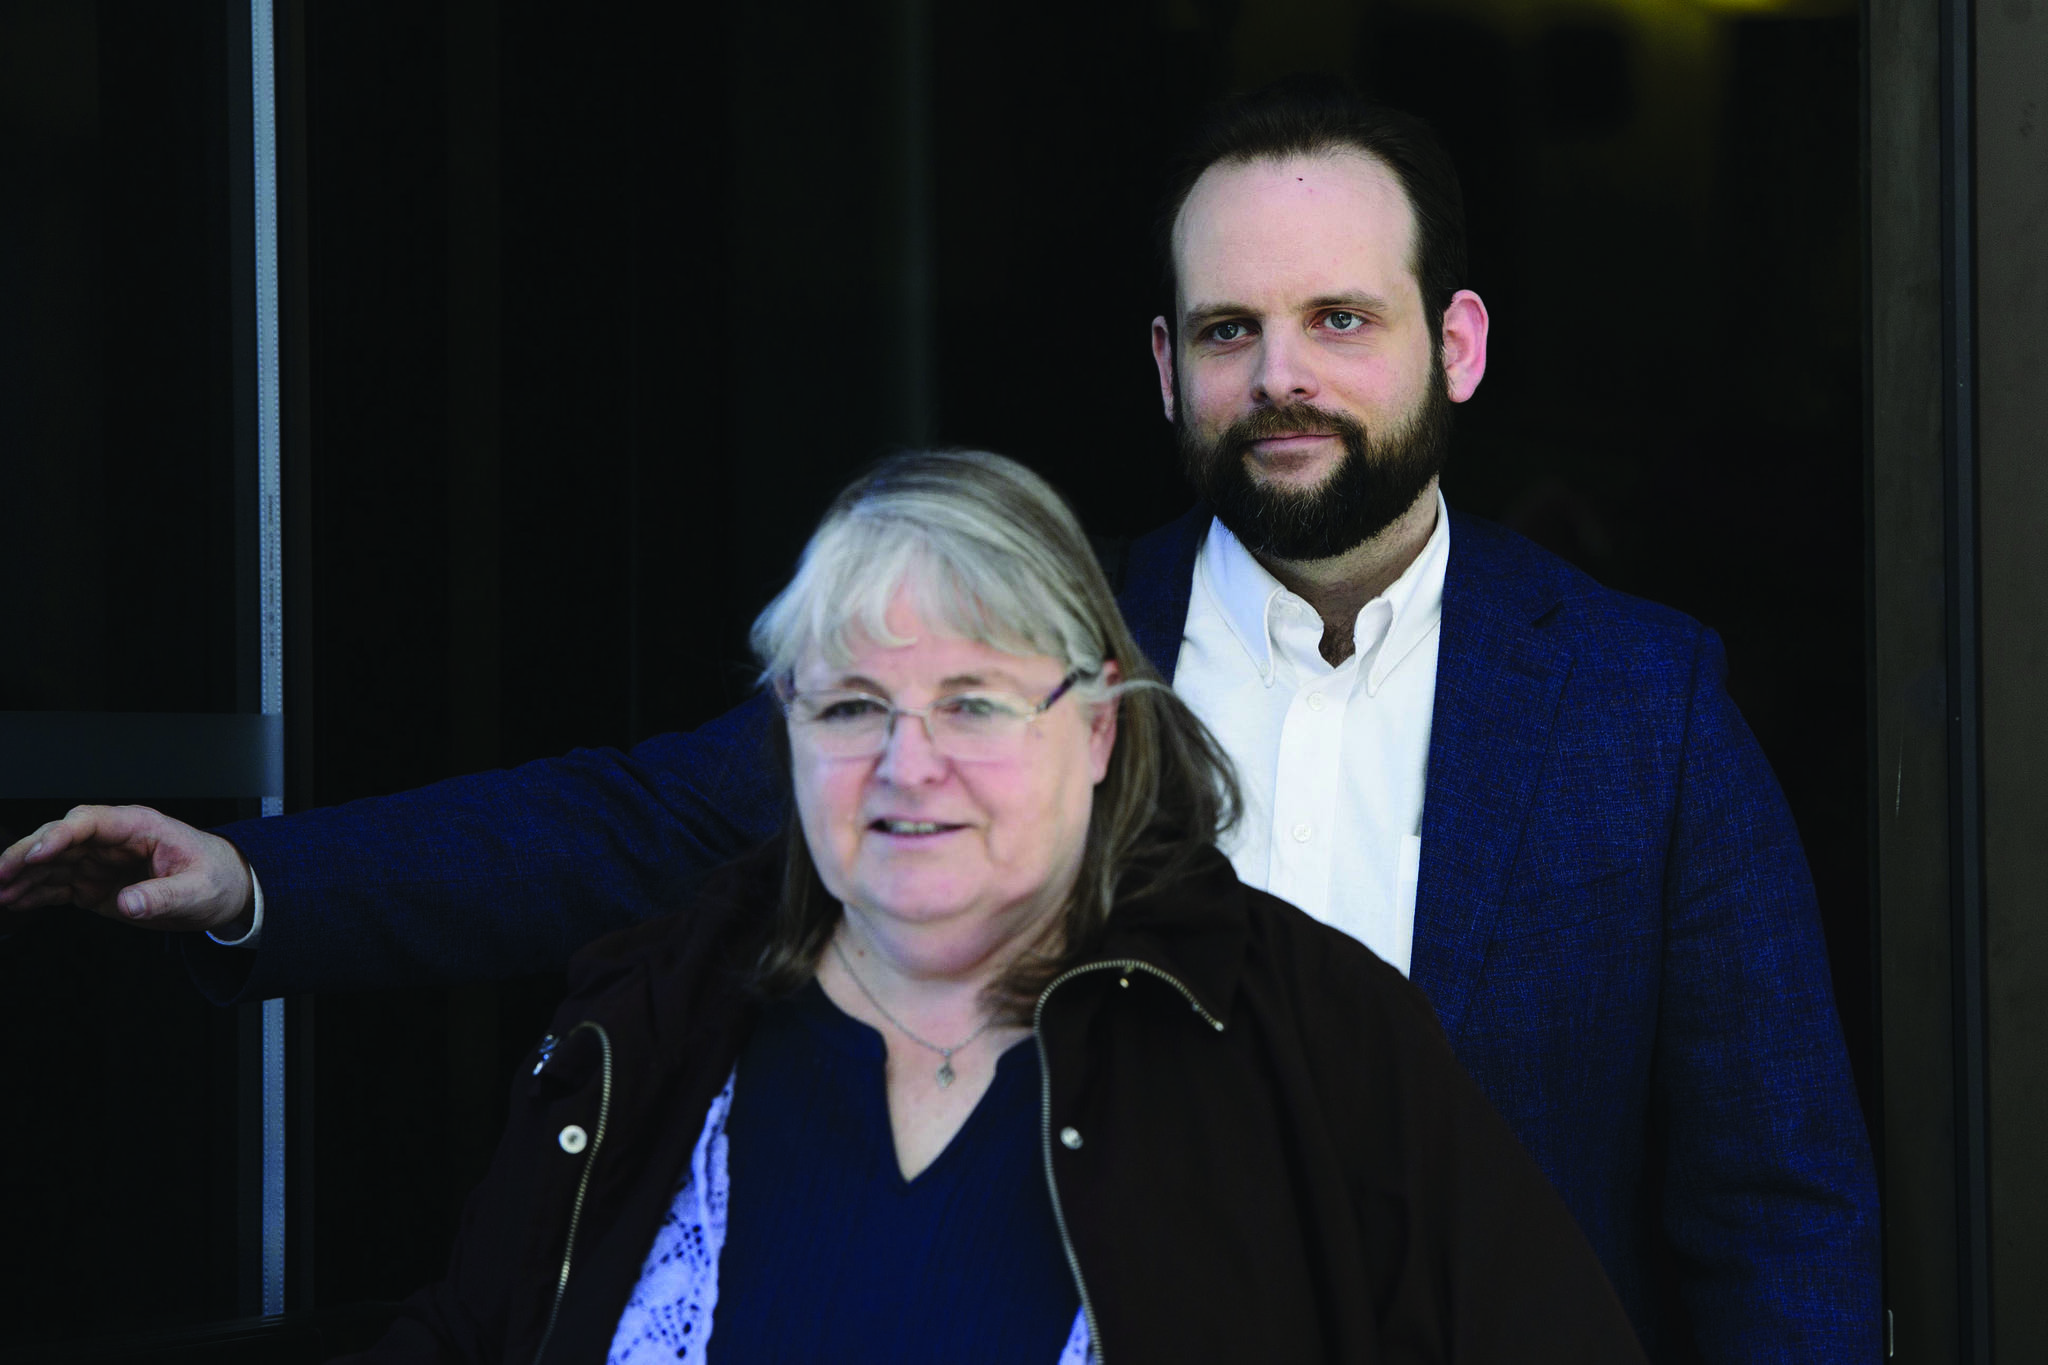 Joshua Boyle leaves court with his mother Linda Boyle in Ottawa on Wednesday, March 27, 2019. THE CANADIAN PRESS/Sean Kilpatrick